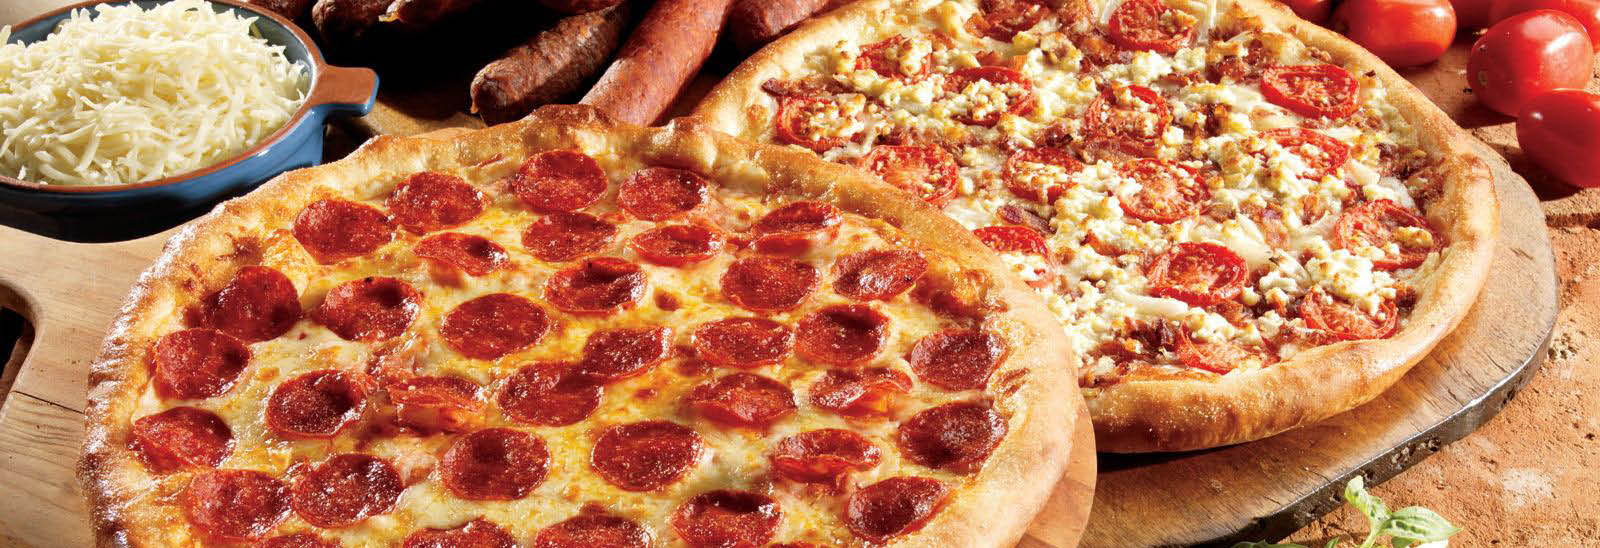 Pepperoni pizza served at Marcos Pizza.